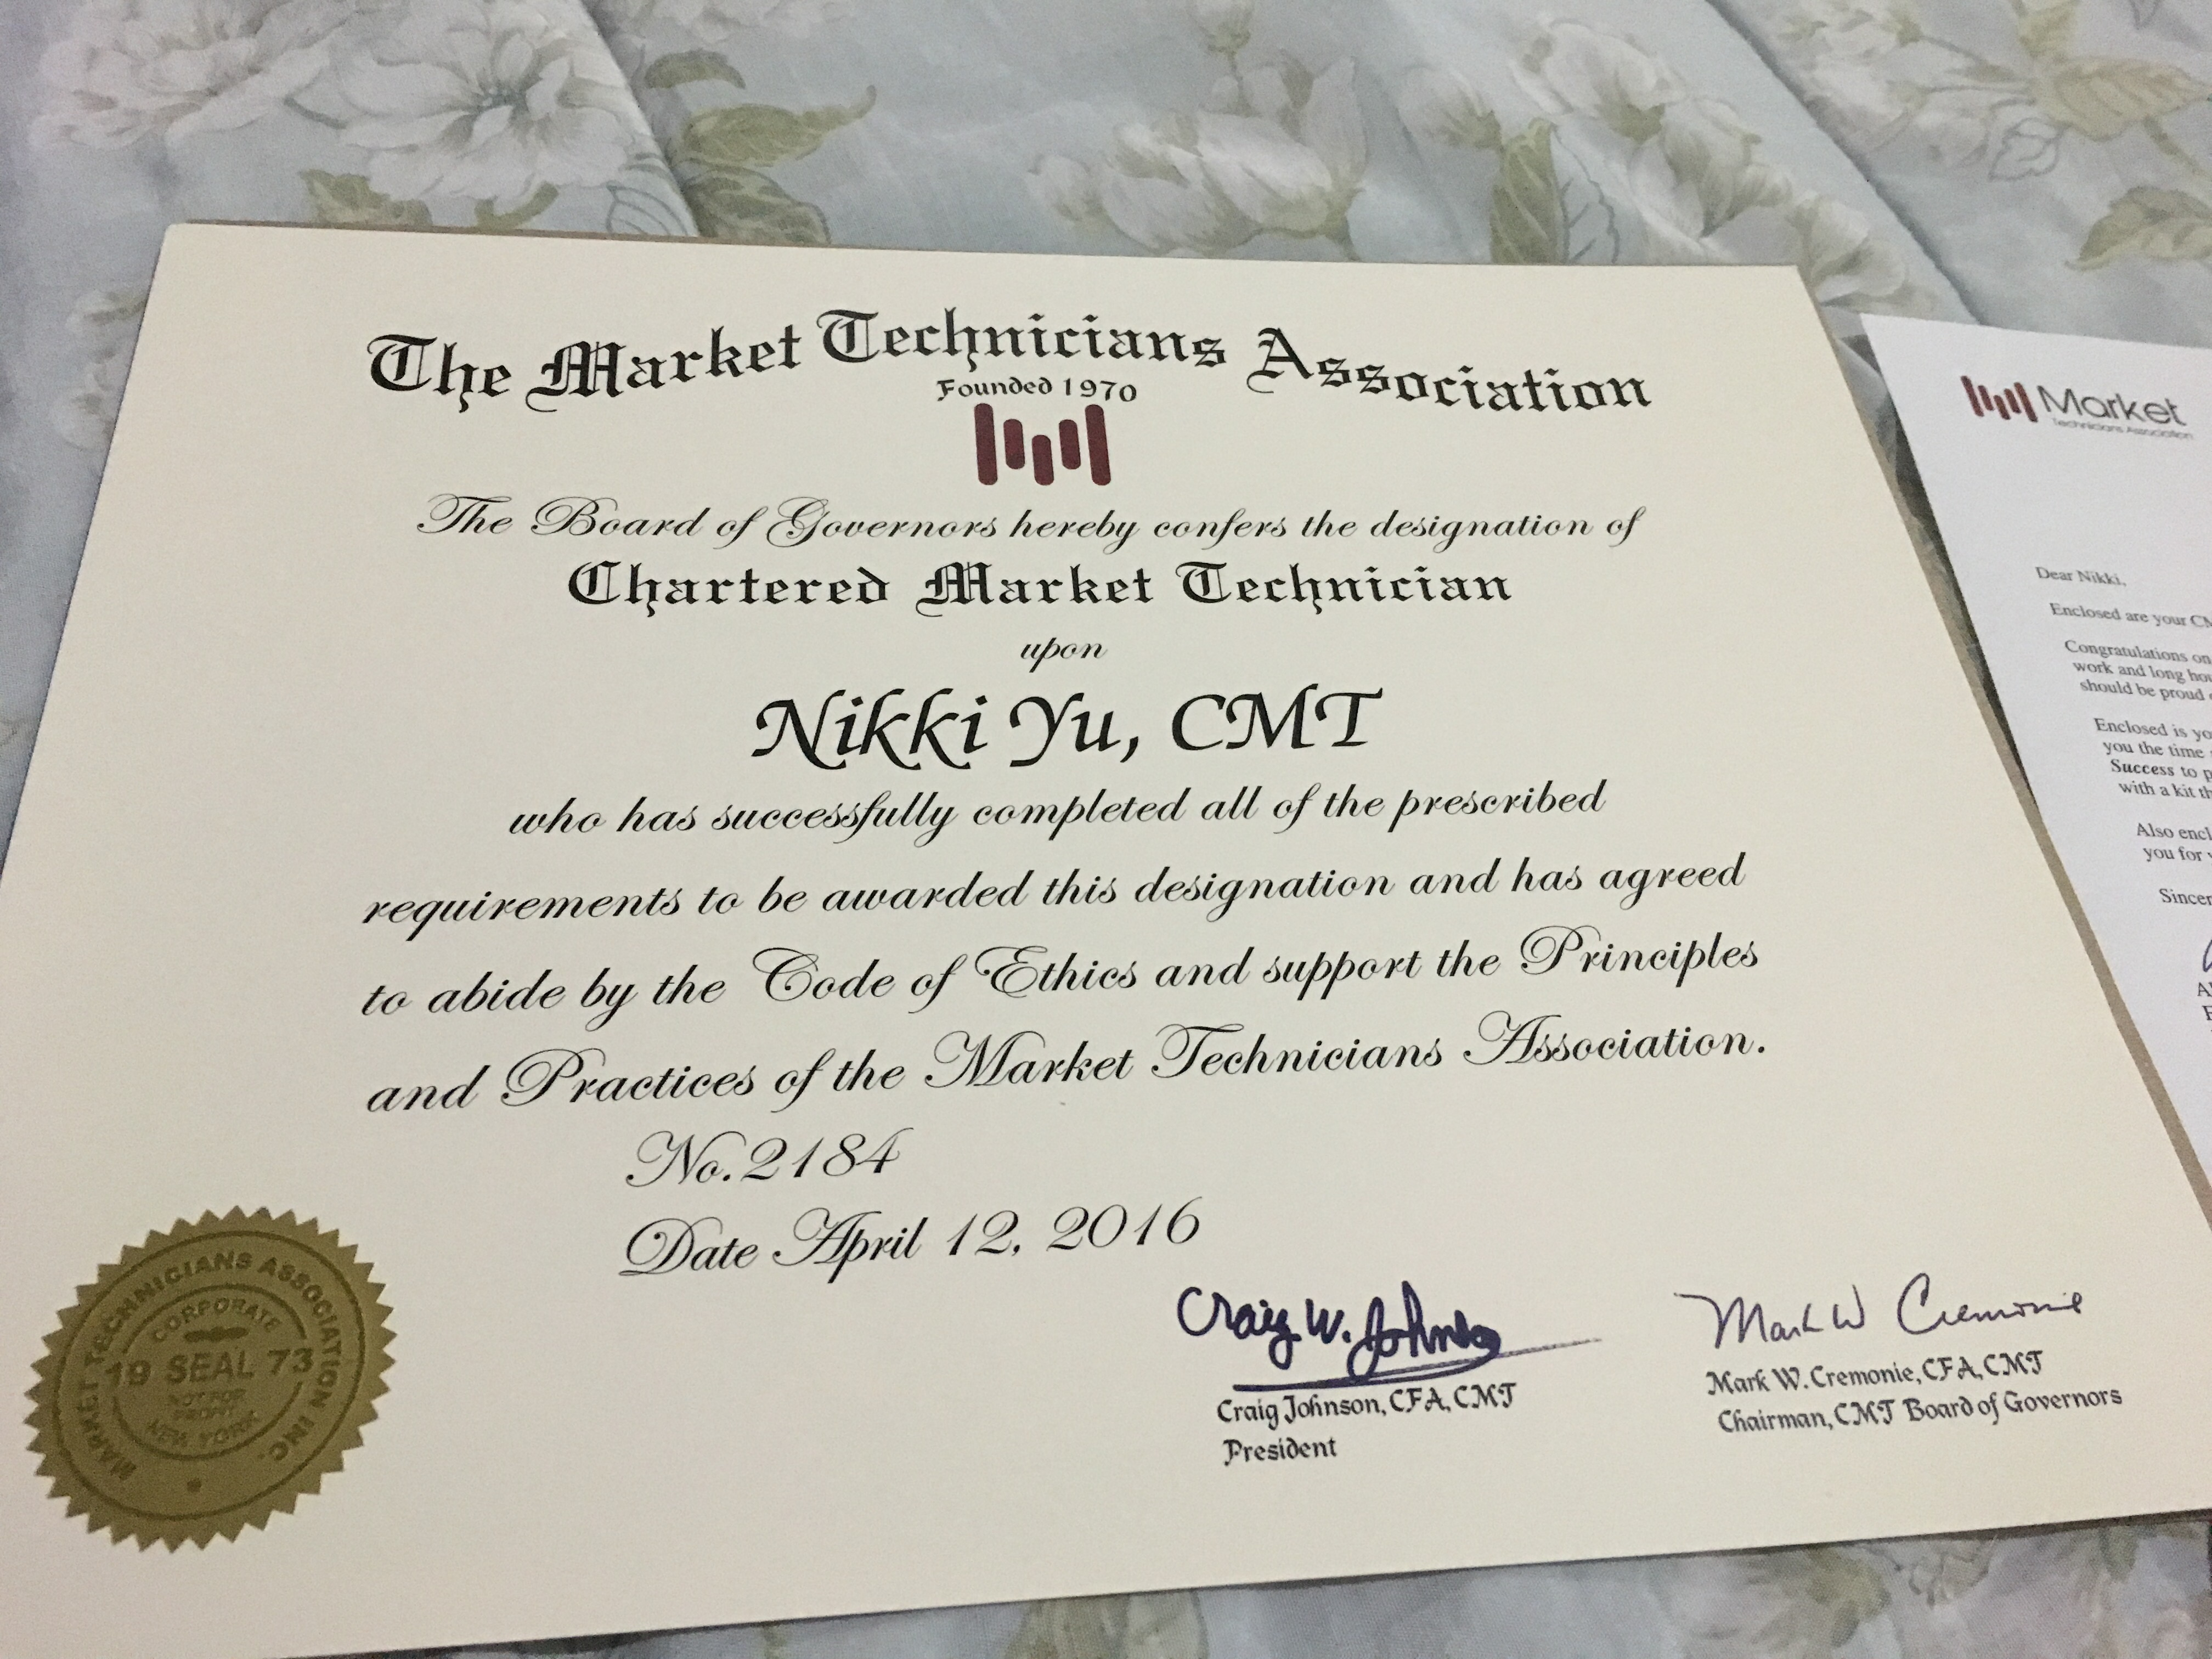 May 72016 getting the cmt designation one thing i did right i have done many mistakes in my life but i am thankful that one thing i didnt do wrong was pursue a worthwhile ideal to take the chartered market 1betcityfo Image collections